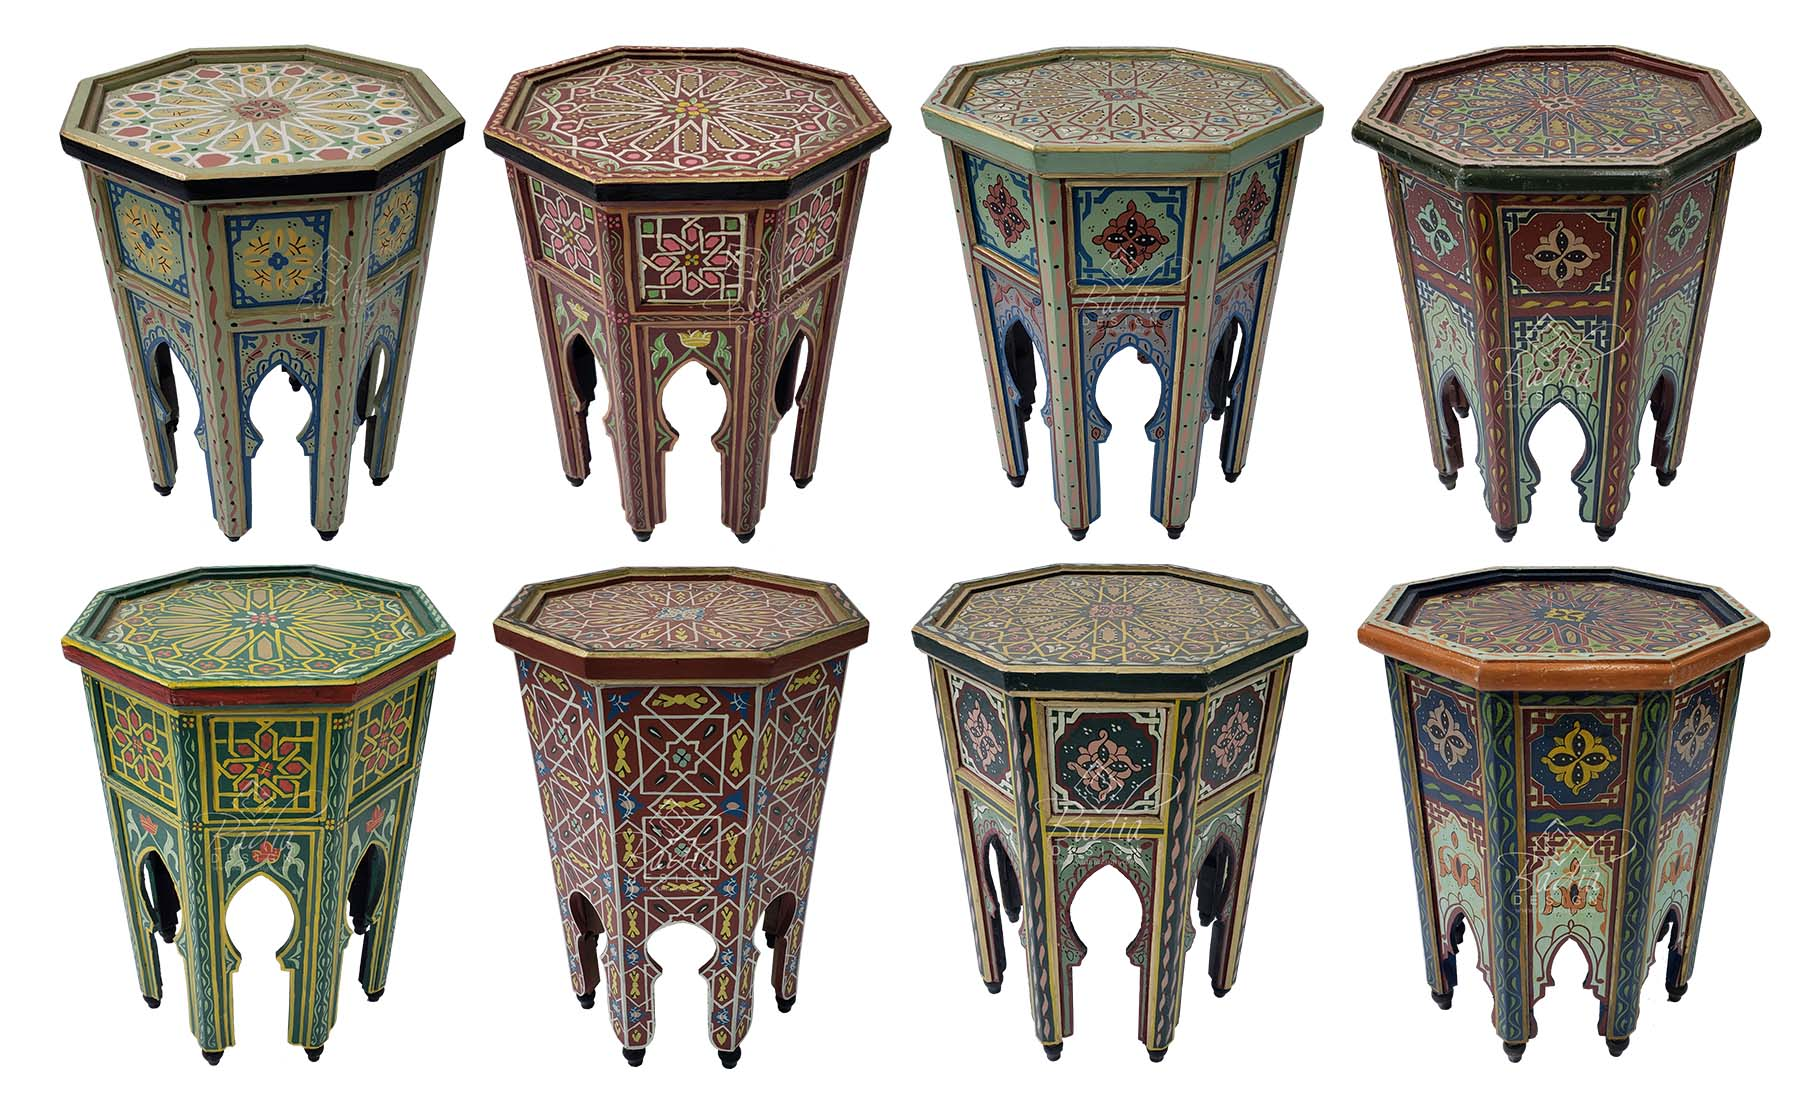 moroccan-multi-color-hand-painted-side-tables-hp009.jpg